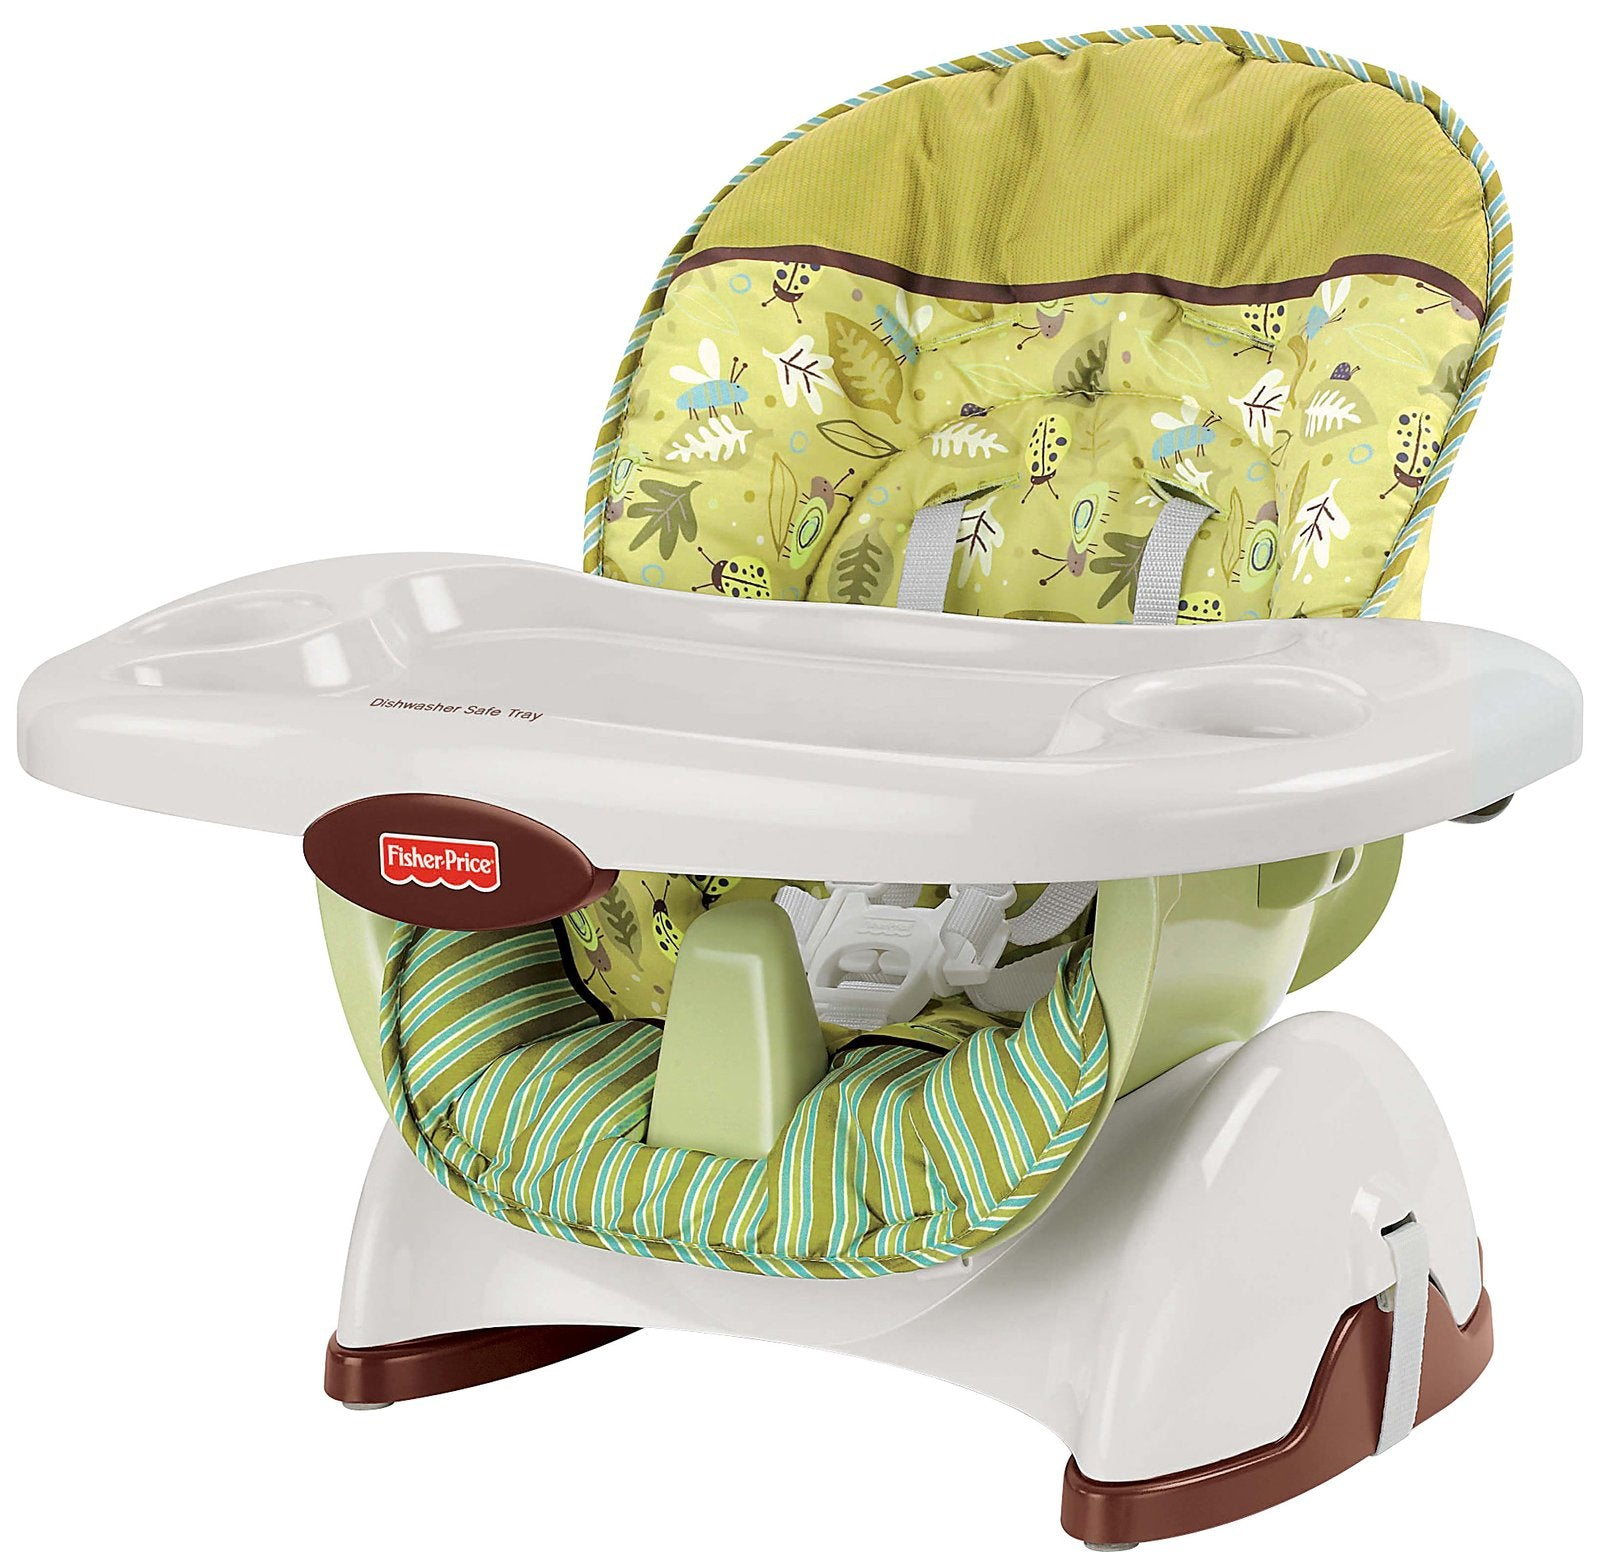 Fisher price precious planet high chair - Brand Name Of High Chair Market Price